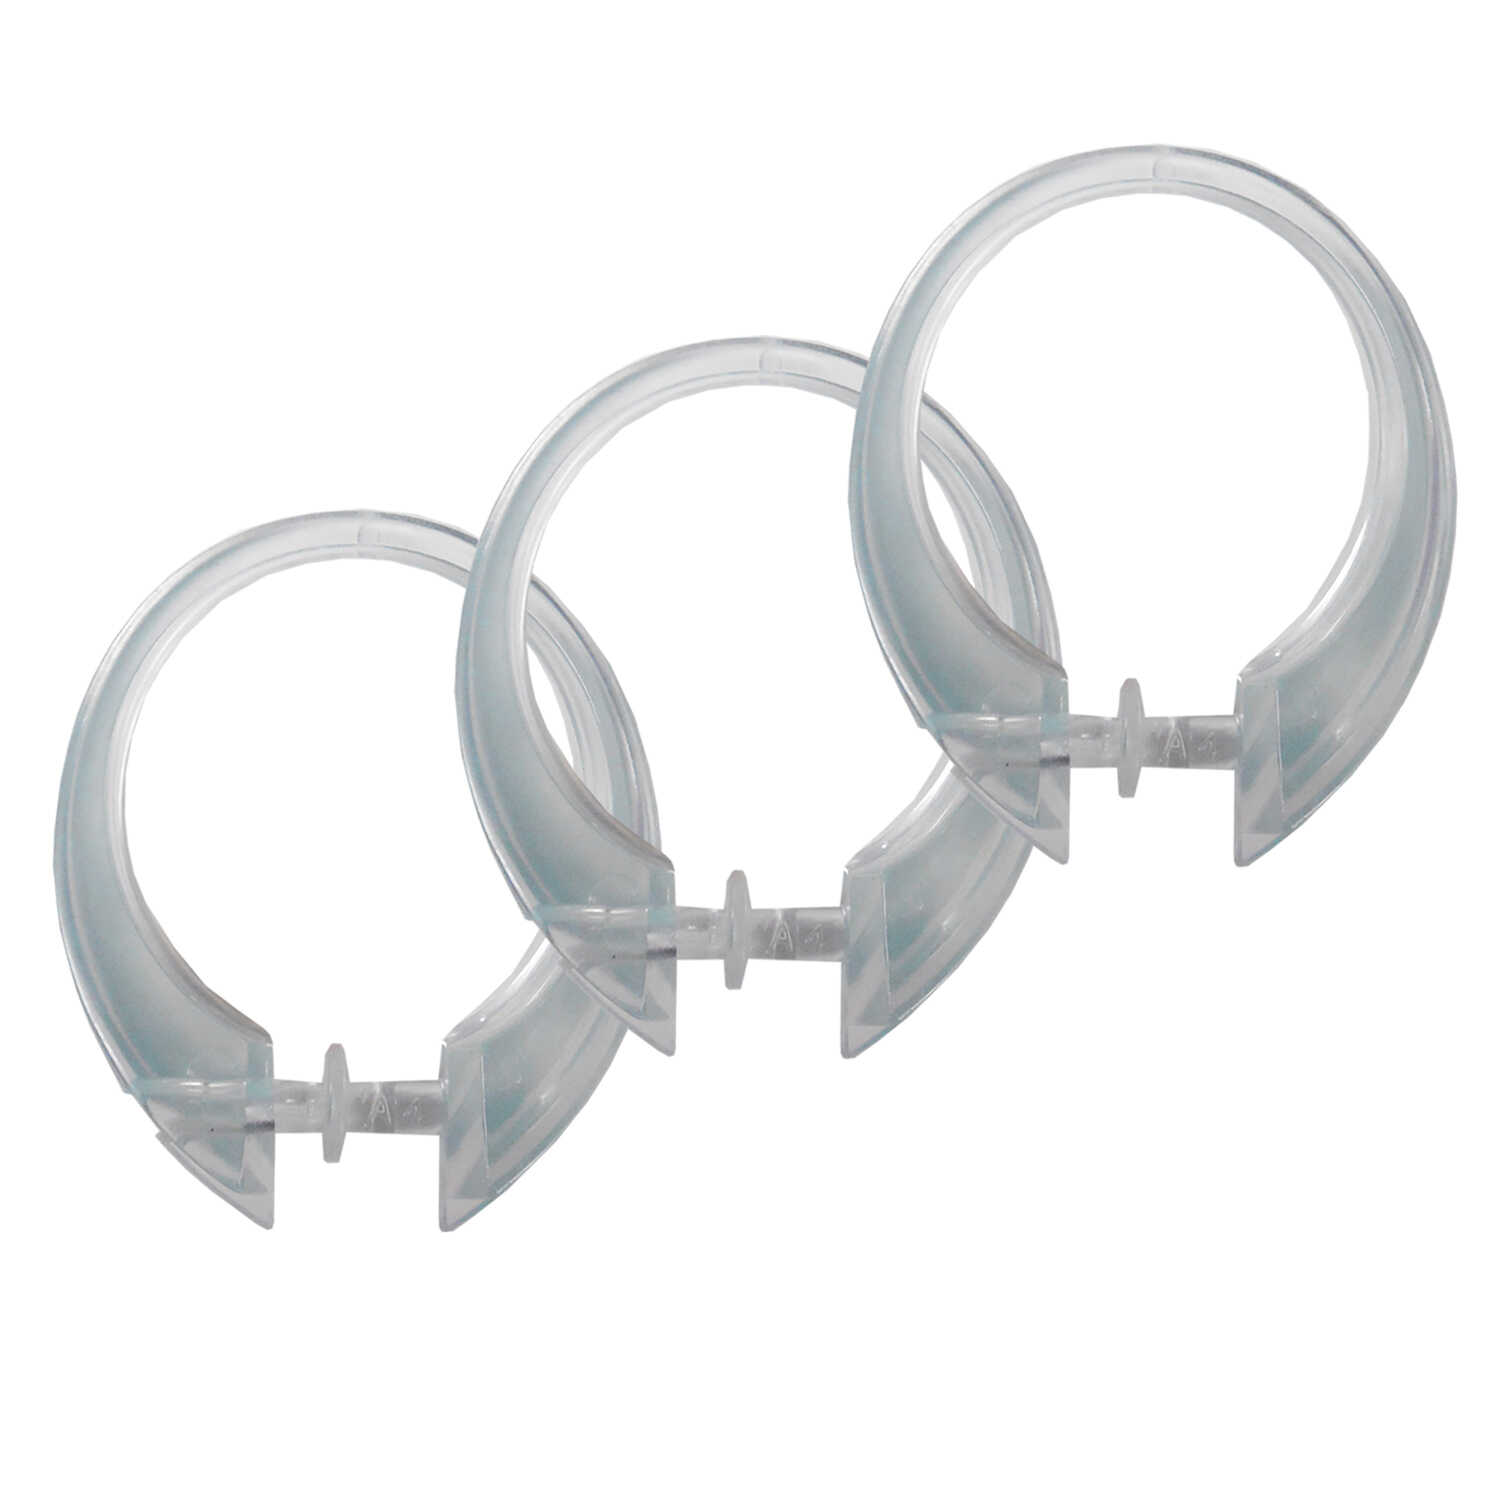 Excell  Clear  Clear  Plastic  Deluxe Button-Up  Shower Curtain Rings  12 pk